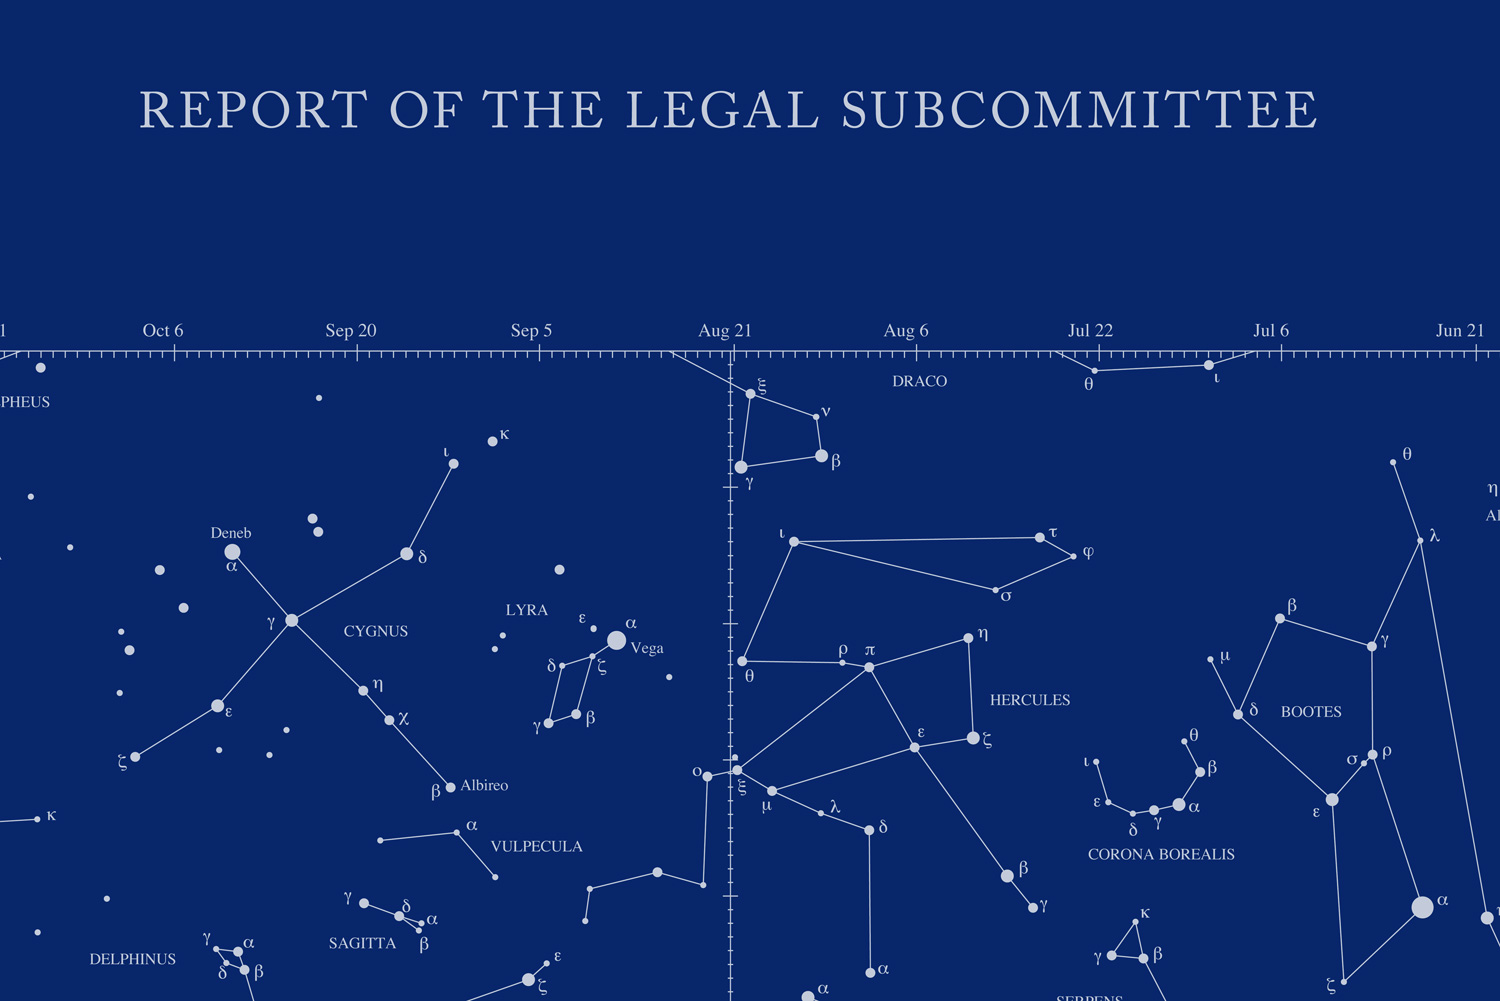 Report-of-the-Legal-Subcommittee-textdetail2.jpg